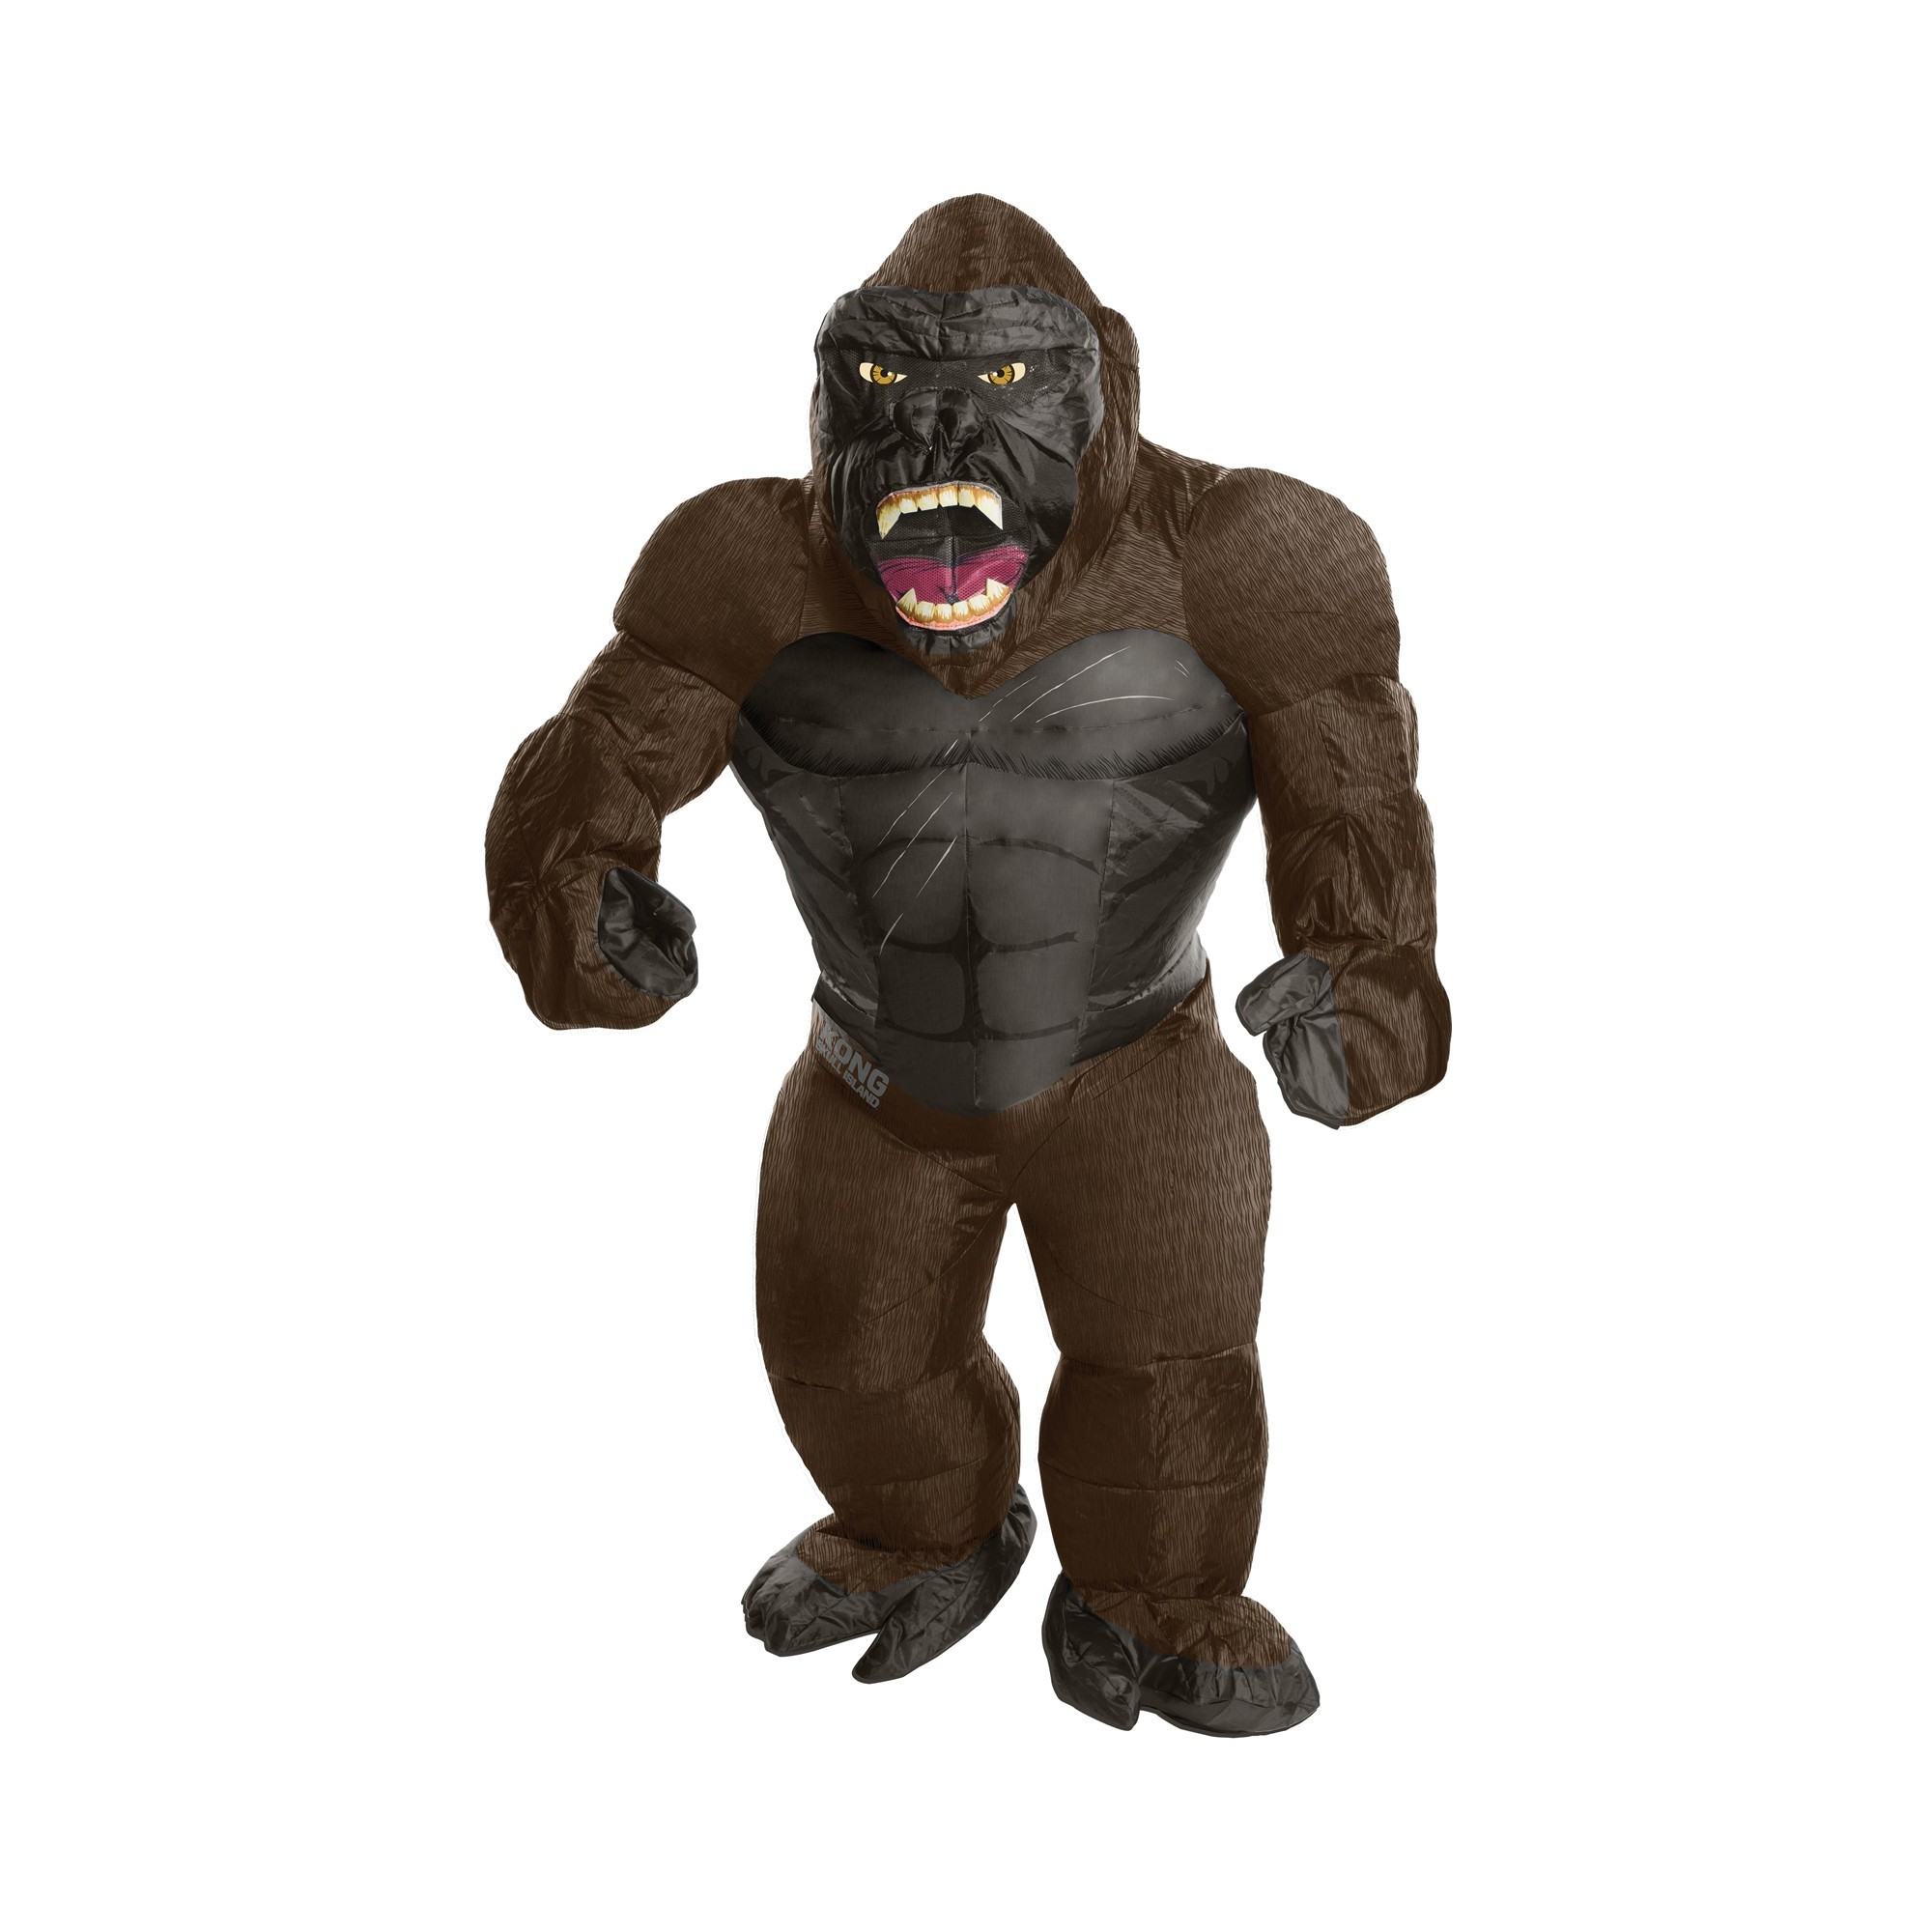 Halloween King Kong inflatable Child Costume, Kids Unisex, Multi-Colored